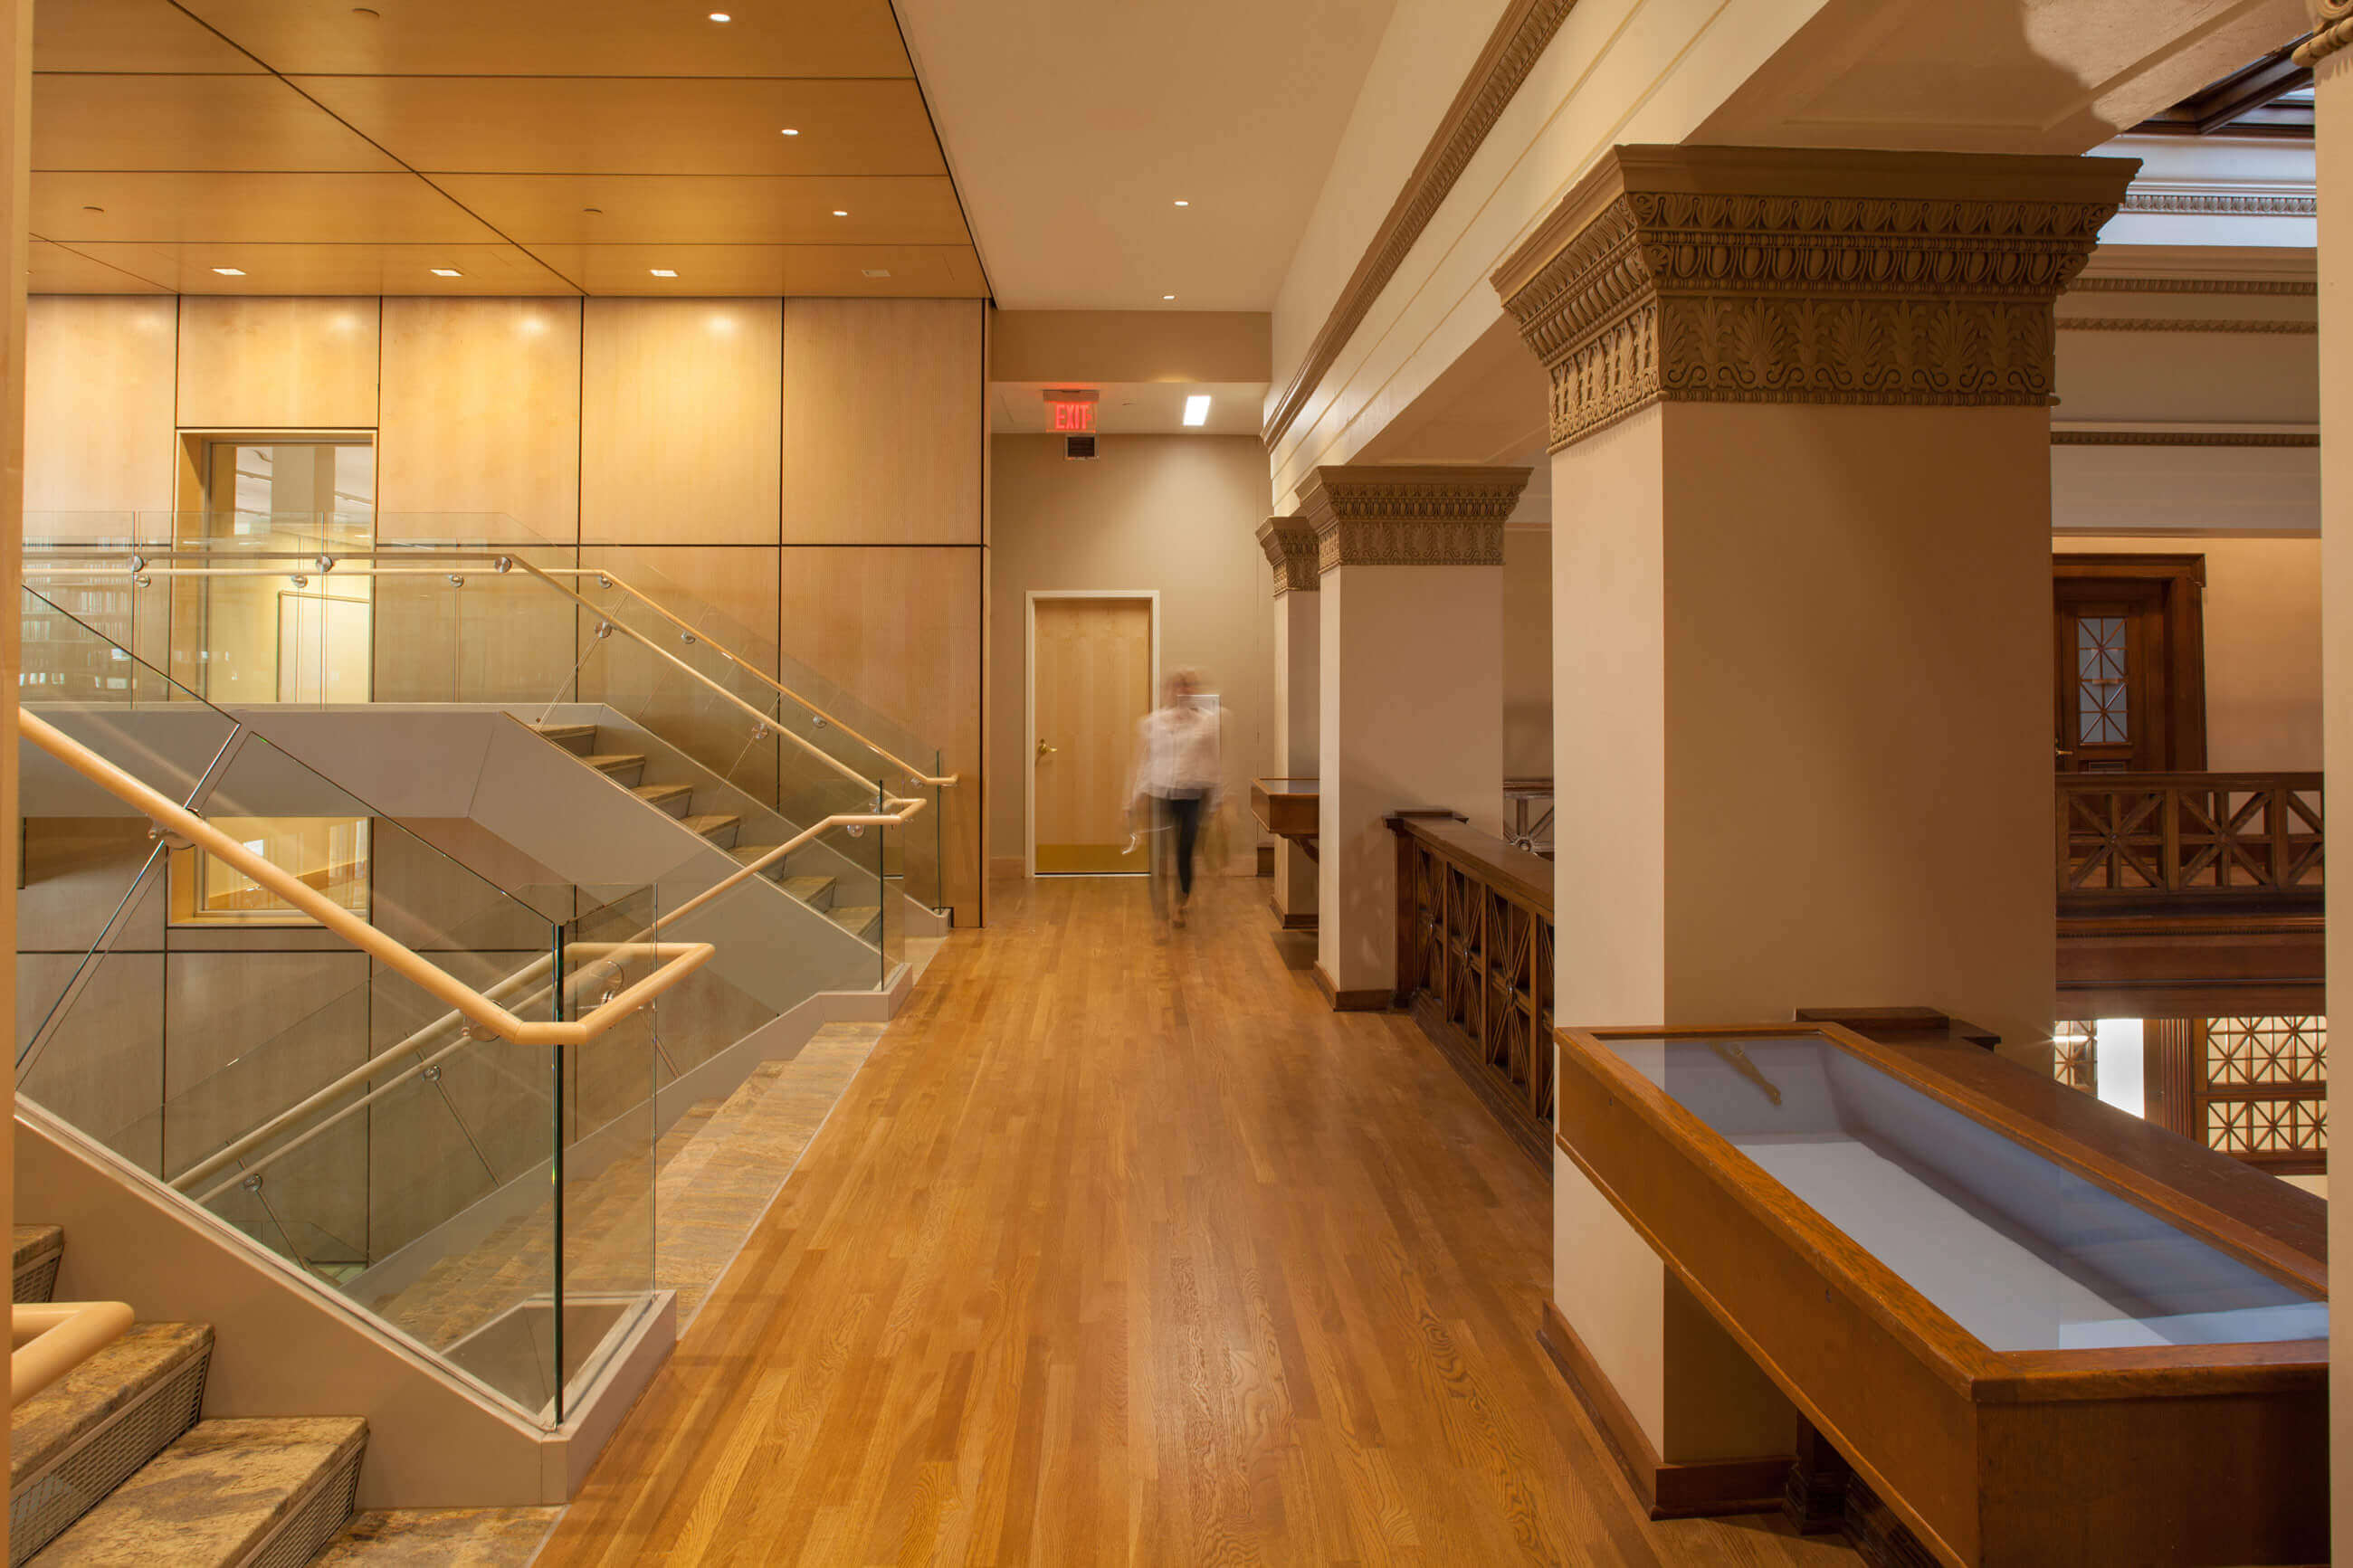 The sleek wooden and glass stairway connects the existing library building with the new addition.